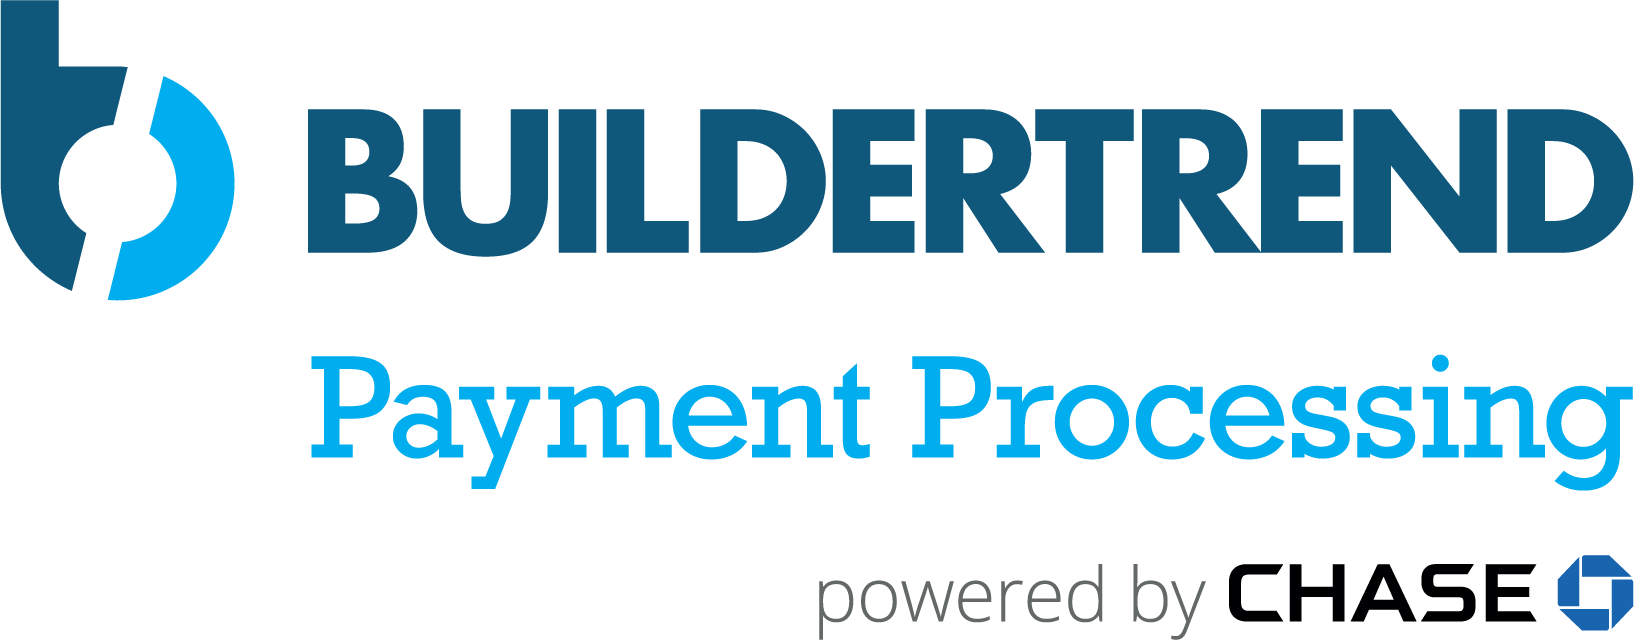 buildertrend payment processing powered by chase logo